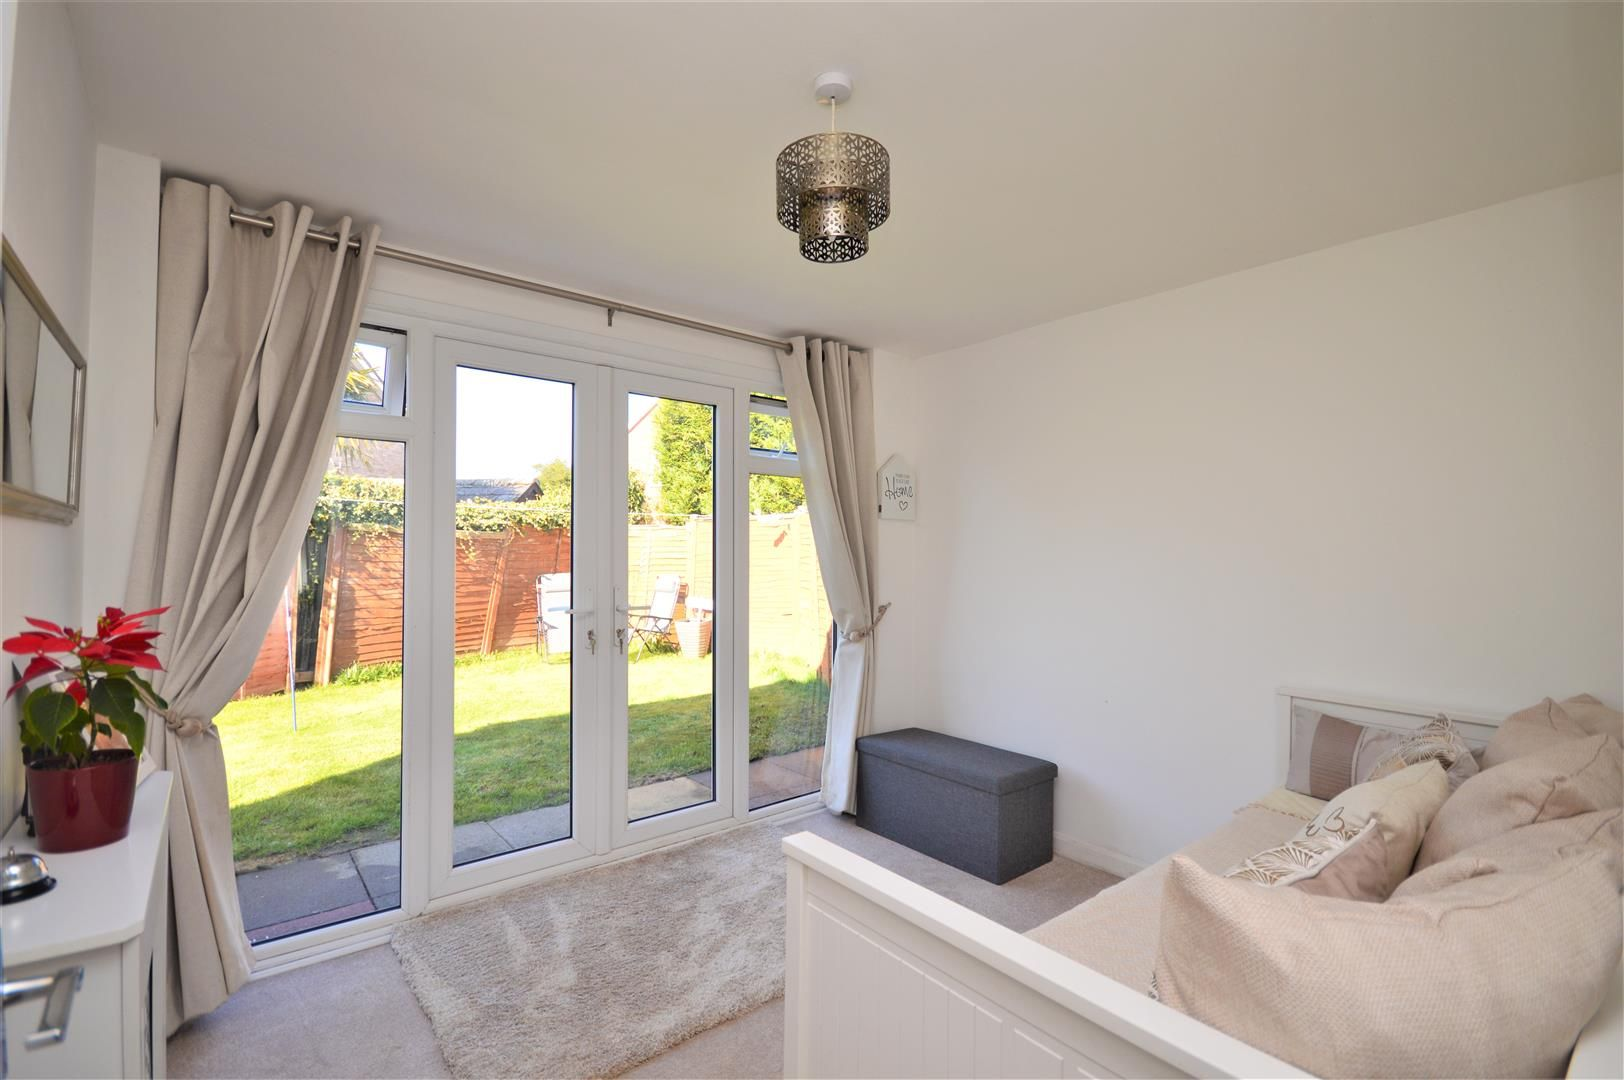 2 bed semi-detached-bungalow for sale in Marden  - Property Image 5